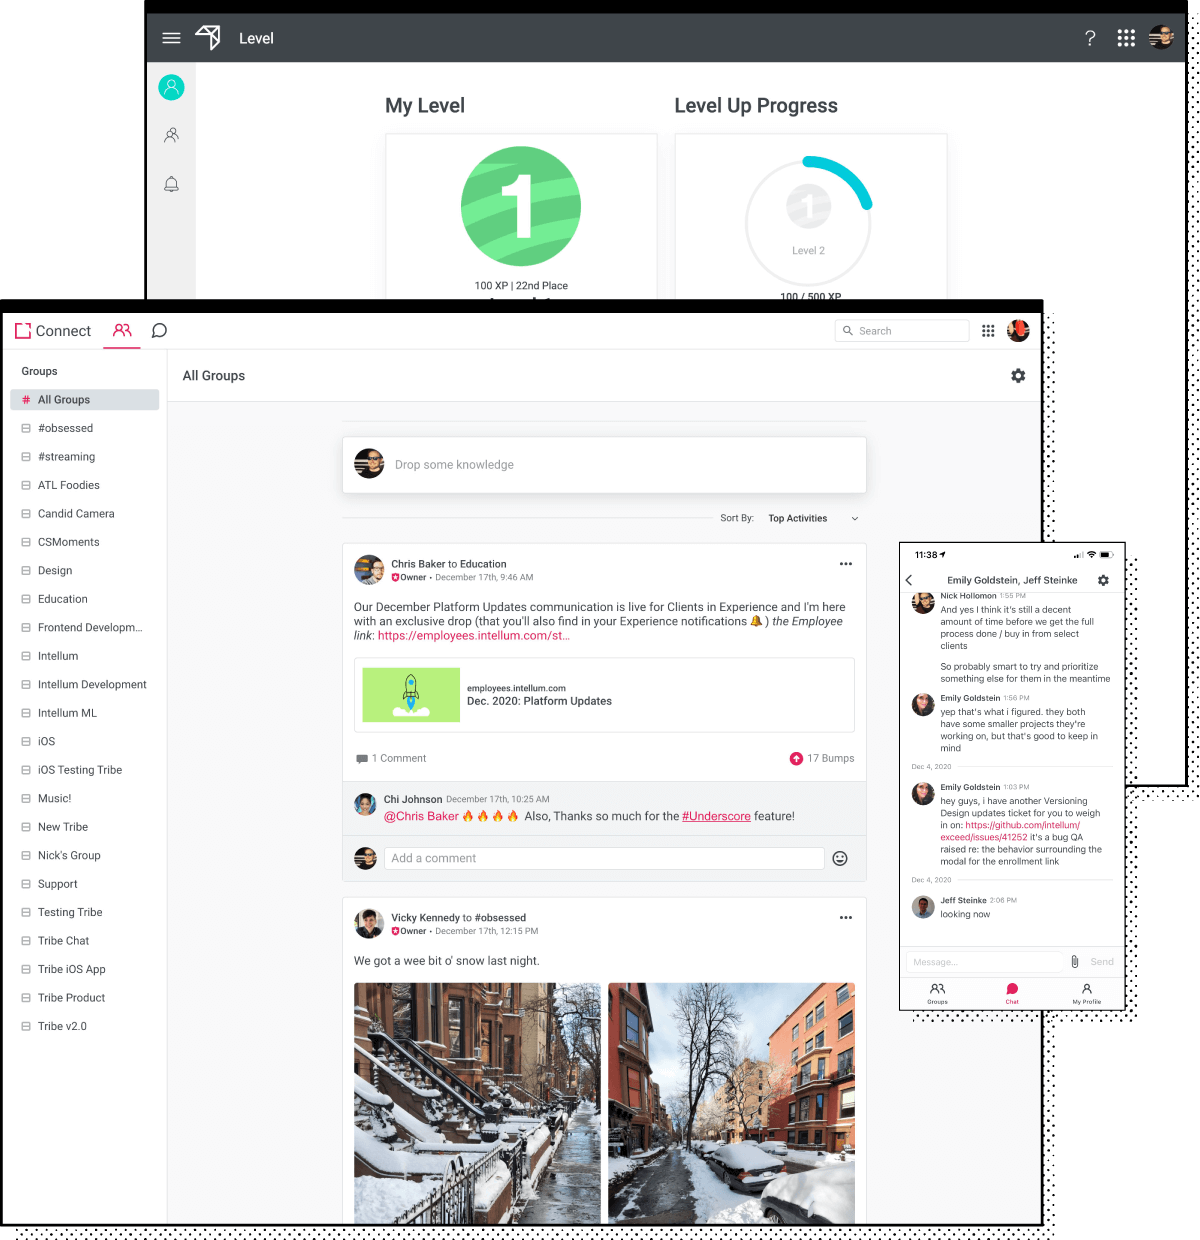 UI examples of extensions in the Intellum Platform. Featured UI examples of the Connect and Level extensions